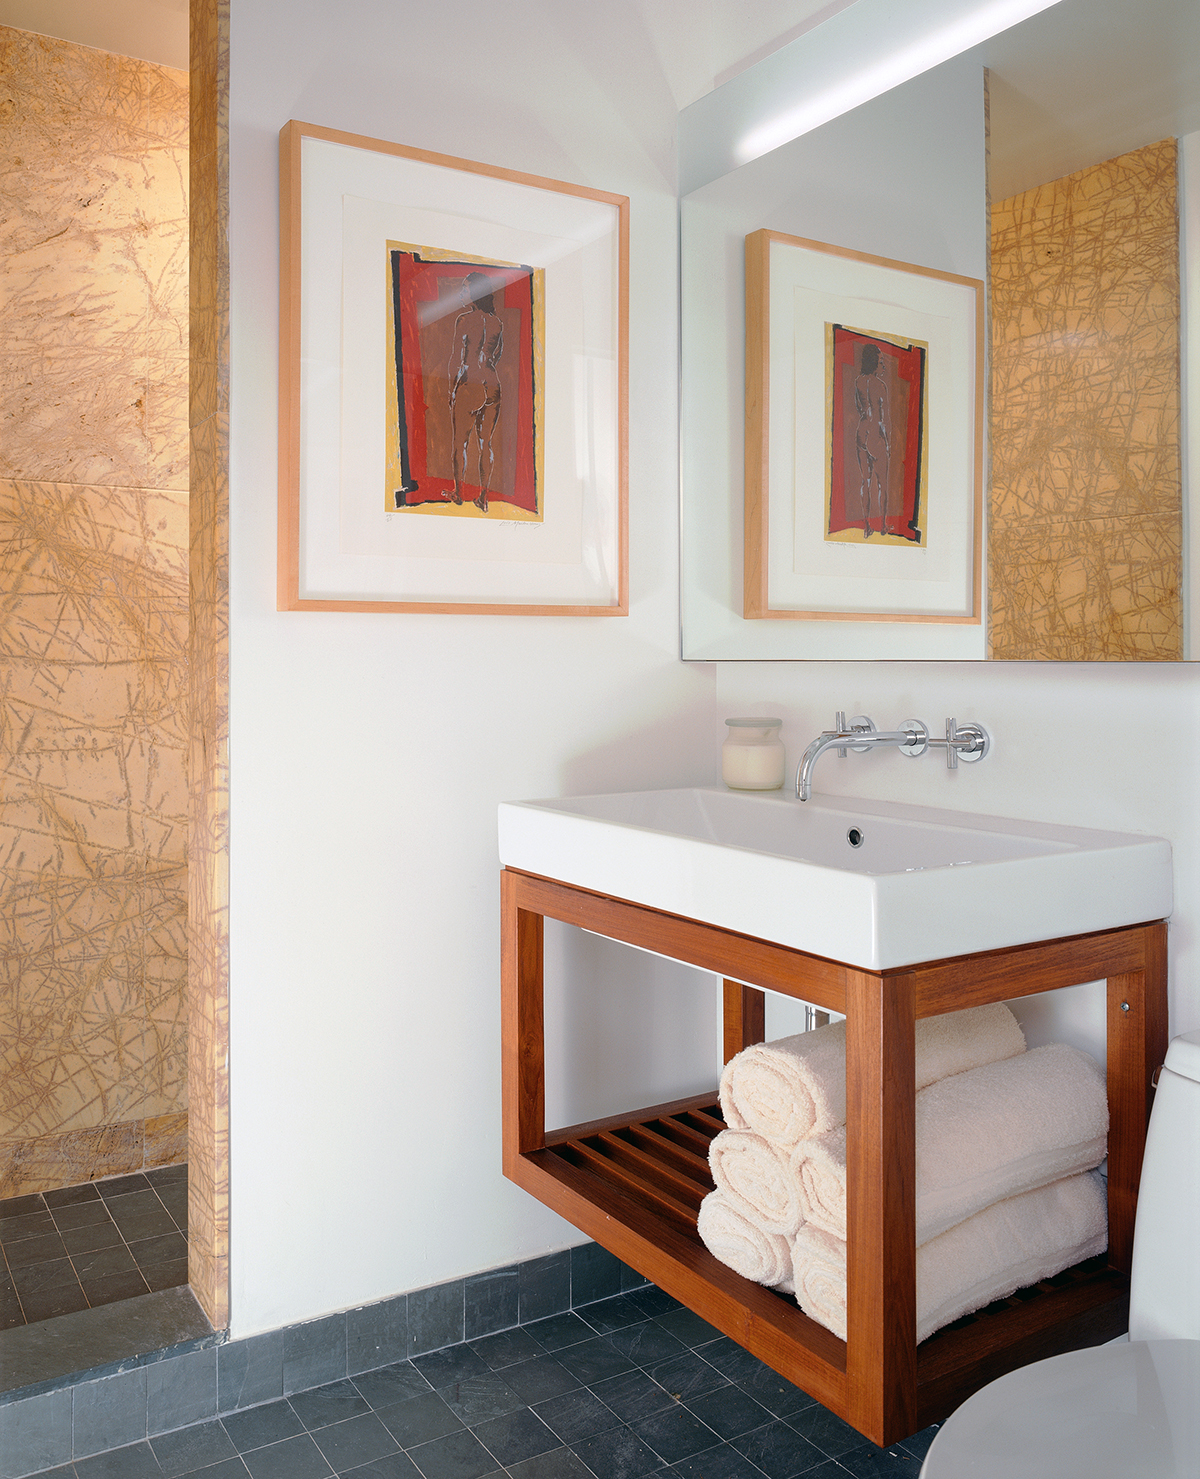 greenwich village apartment bathroom